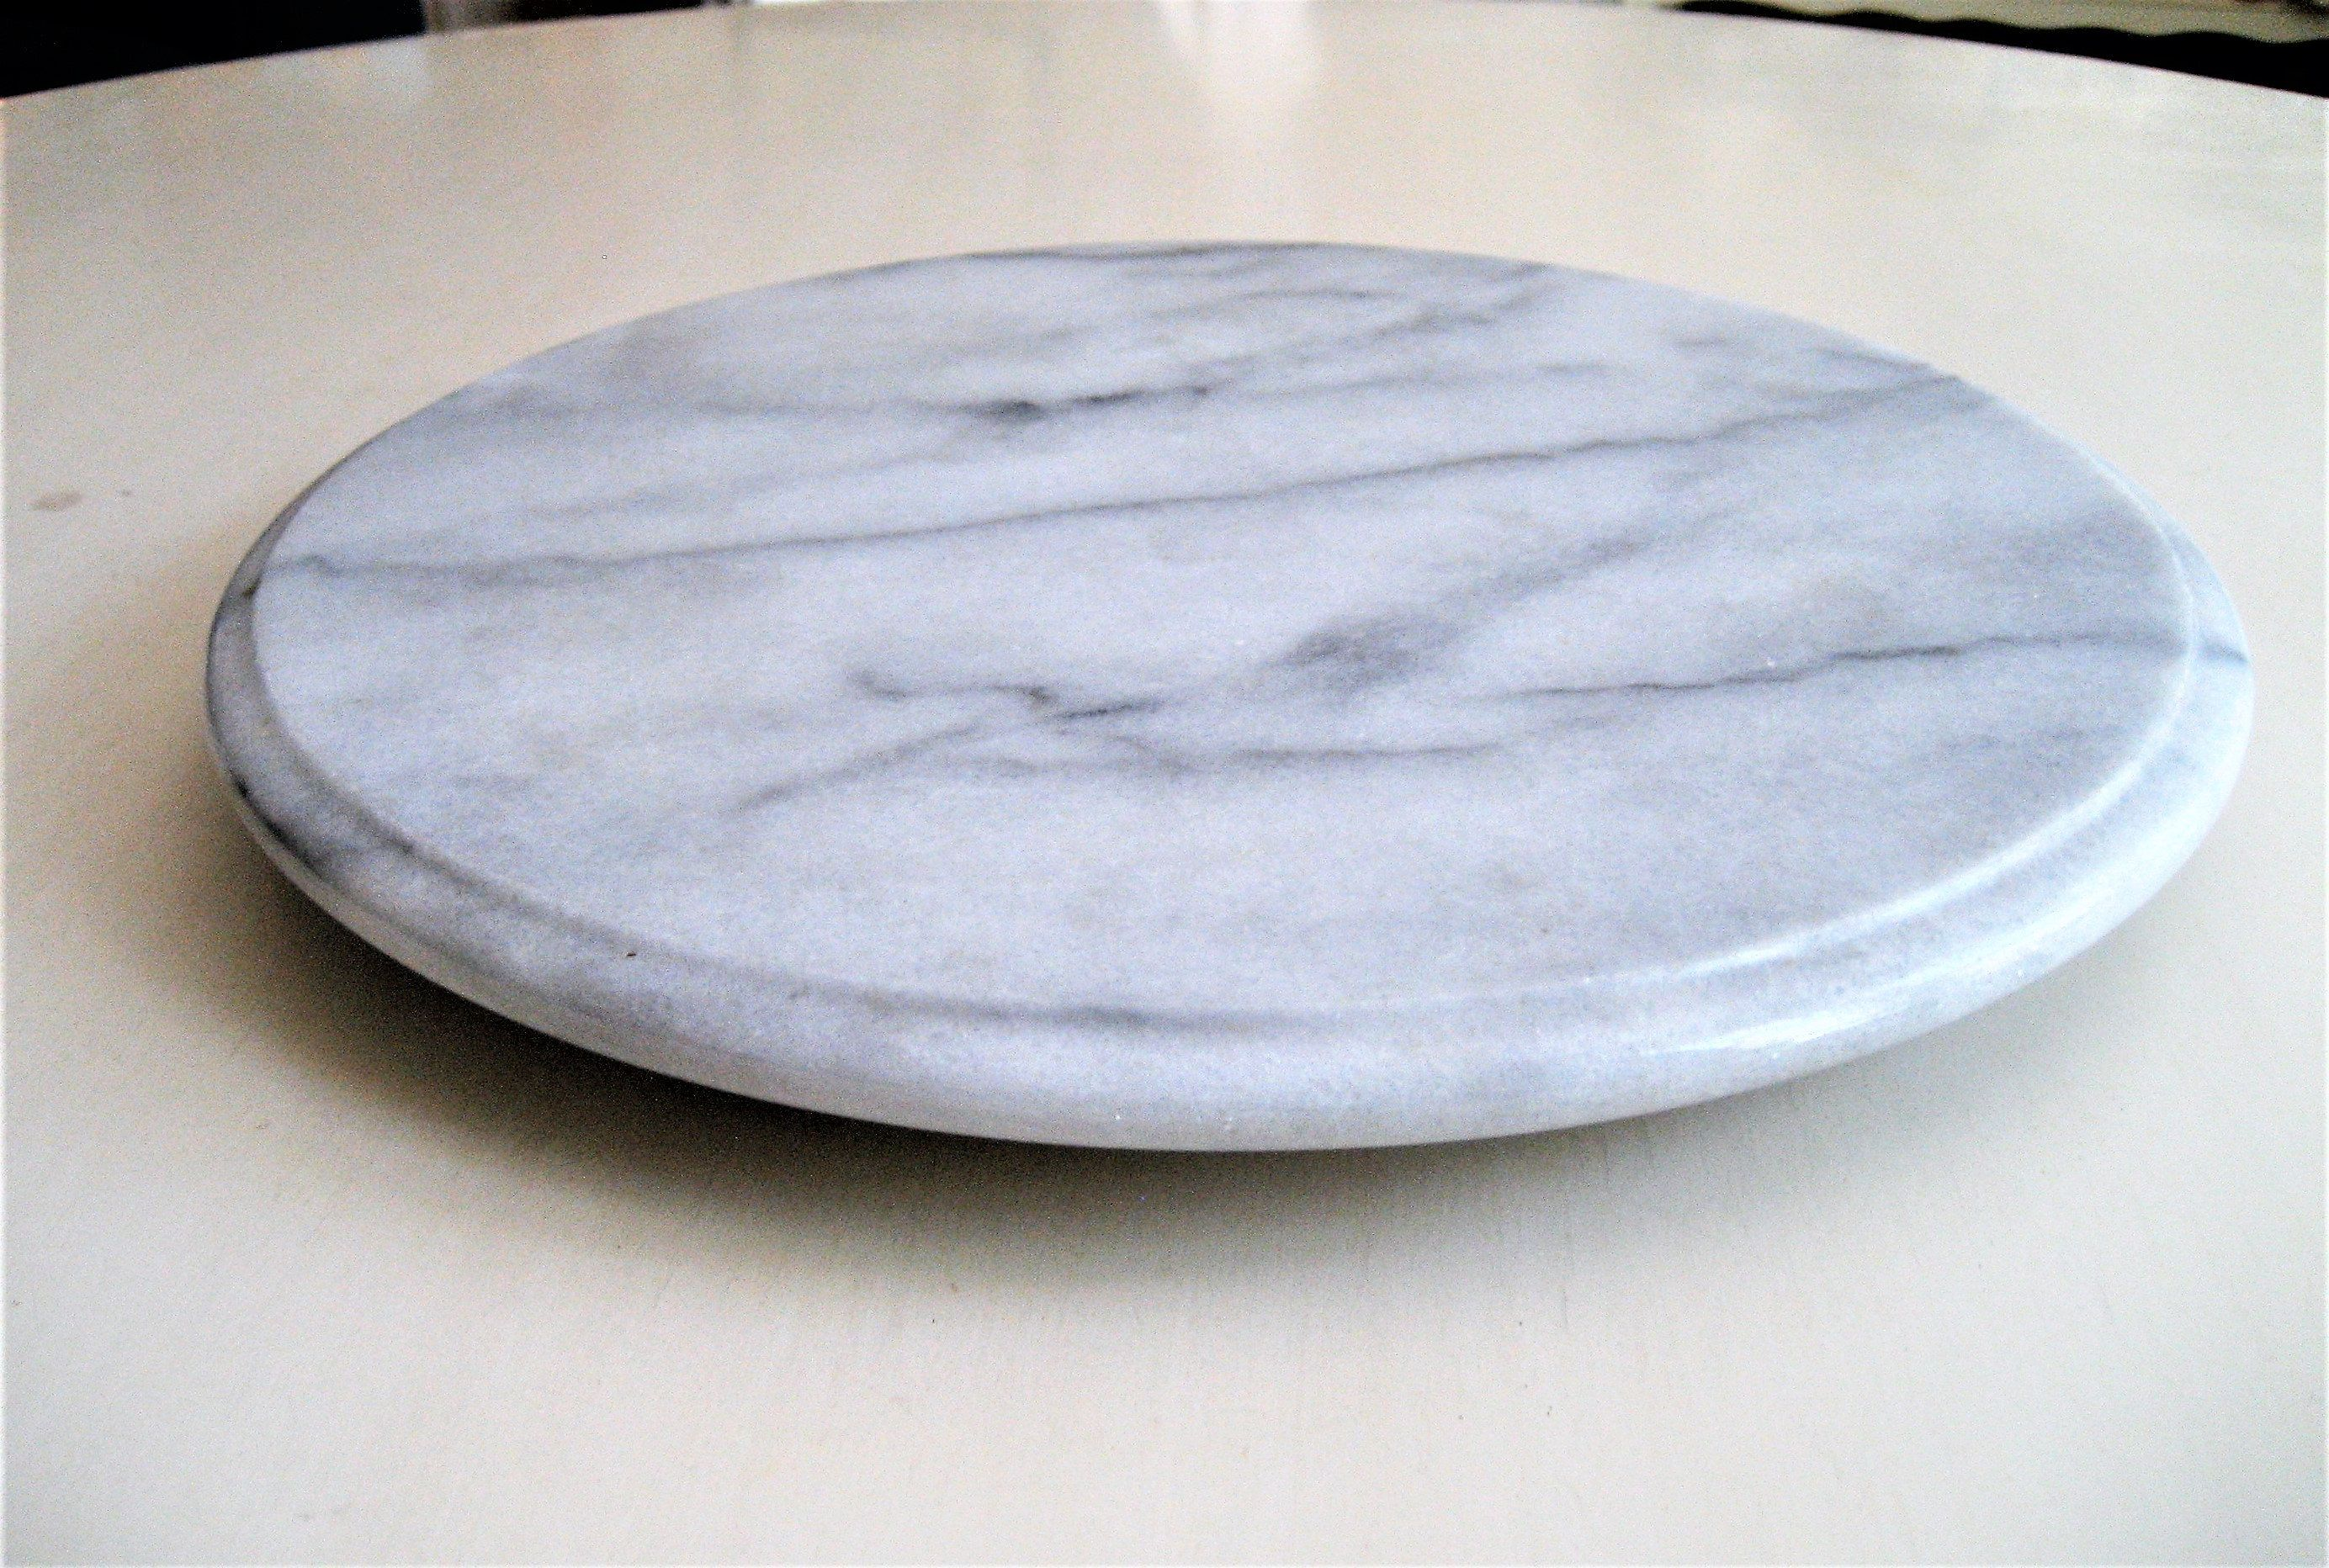 Marble Lazy Susan Round Marble Table Centerpiece Gift Turntable Easy Reach Salt Pepper Shakers Sugar Napki Marble Lazy Susan Round Marble Table Marble Table